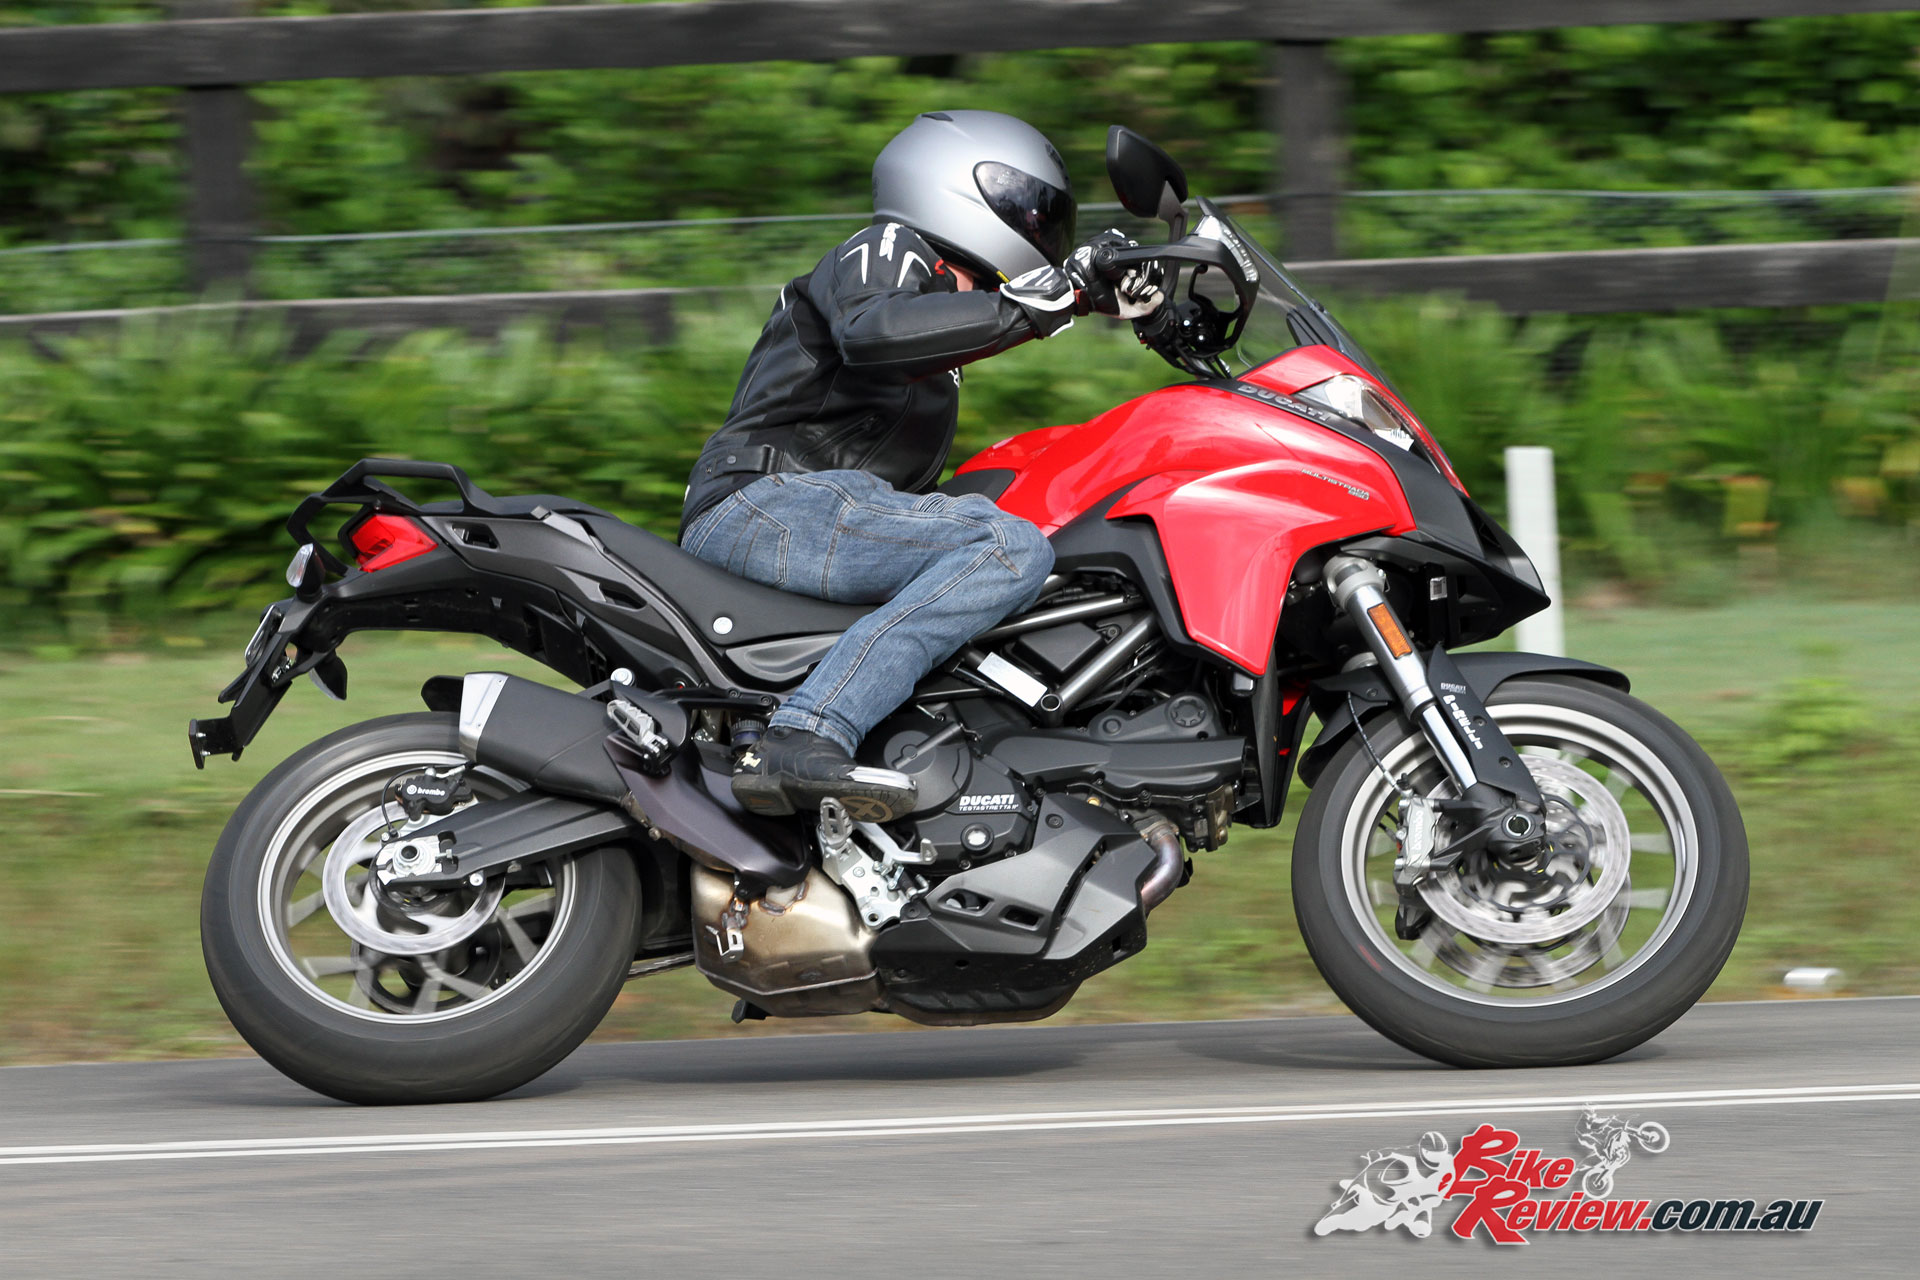 2017-Ducati-Multistrada-950-Bike-Review-18